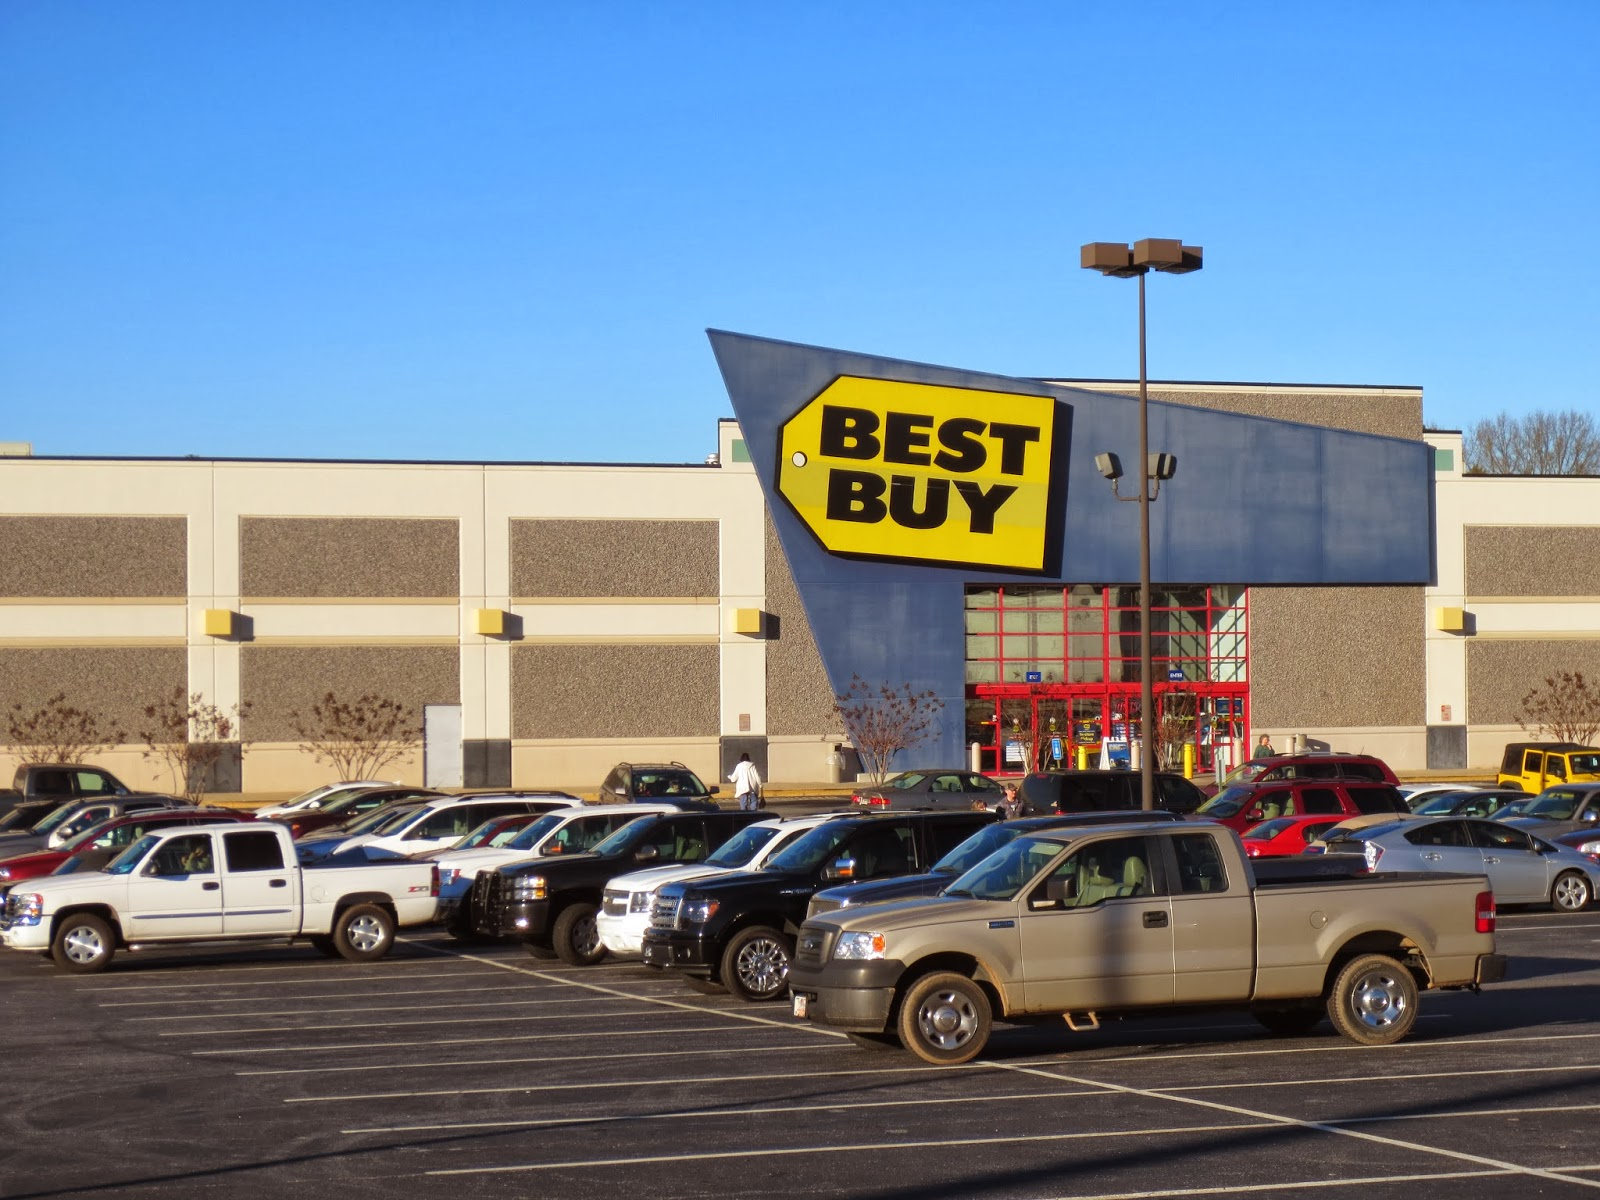 oconee county observations oconee county issues building permit for best buy in epps bridge centre. Black Bedroom Furniture Sets. Home Design Ideas